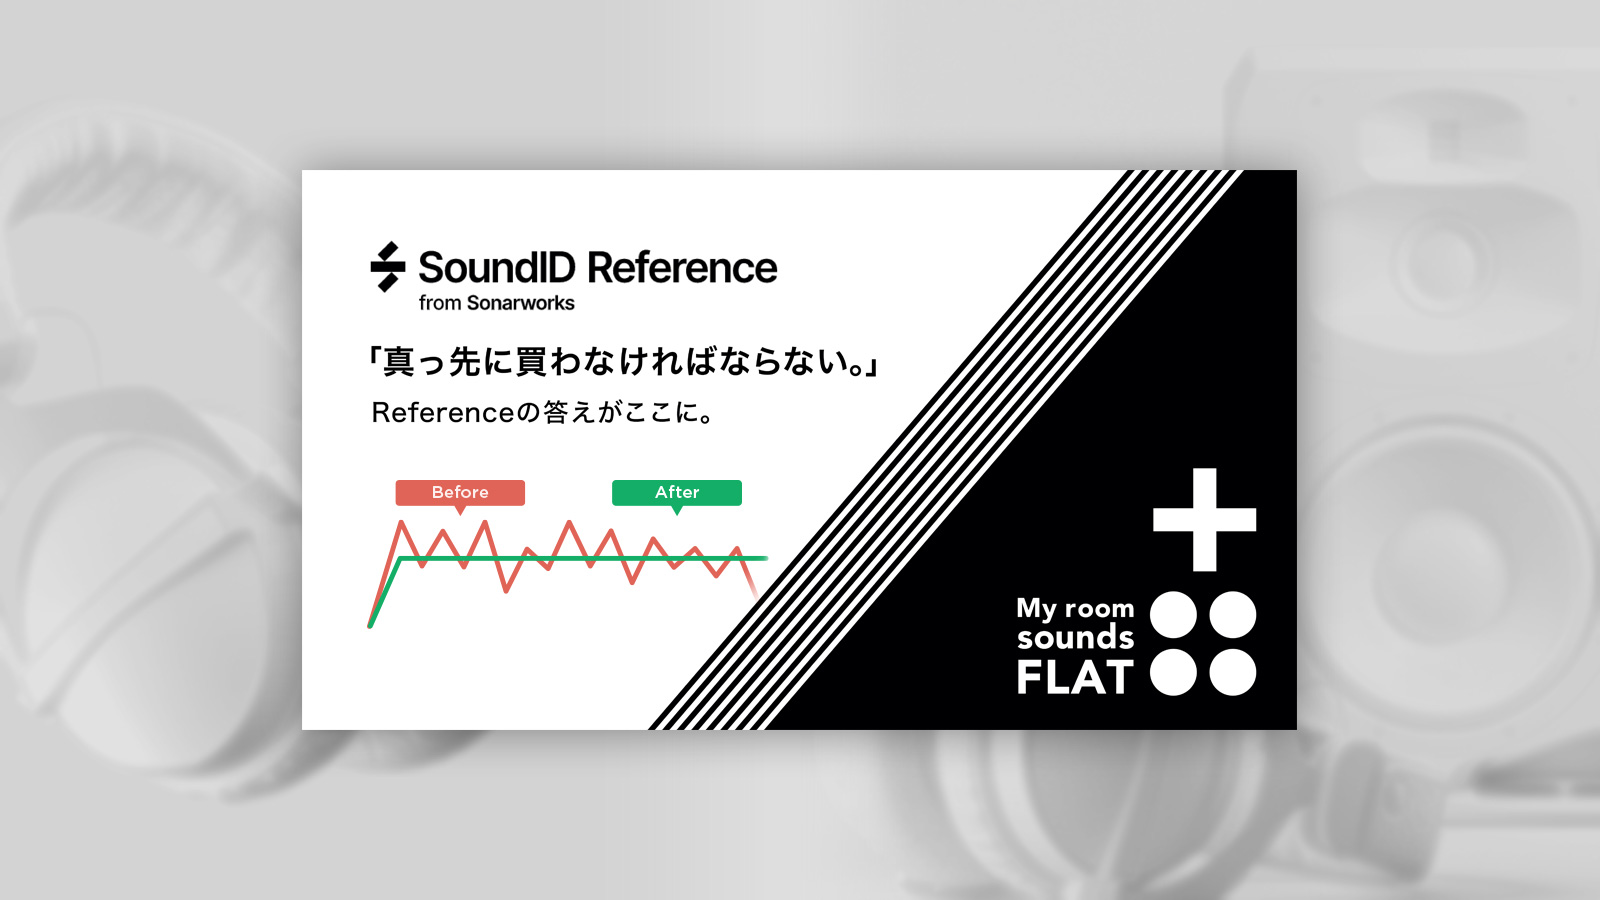 SoundID Reference from Sonarworks 「真っ先に買わなければならない。」